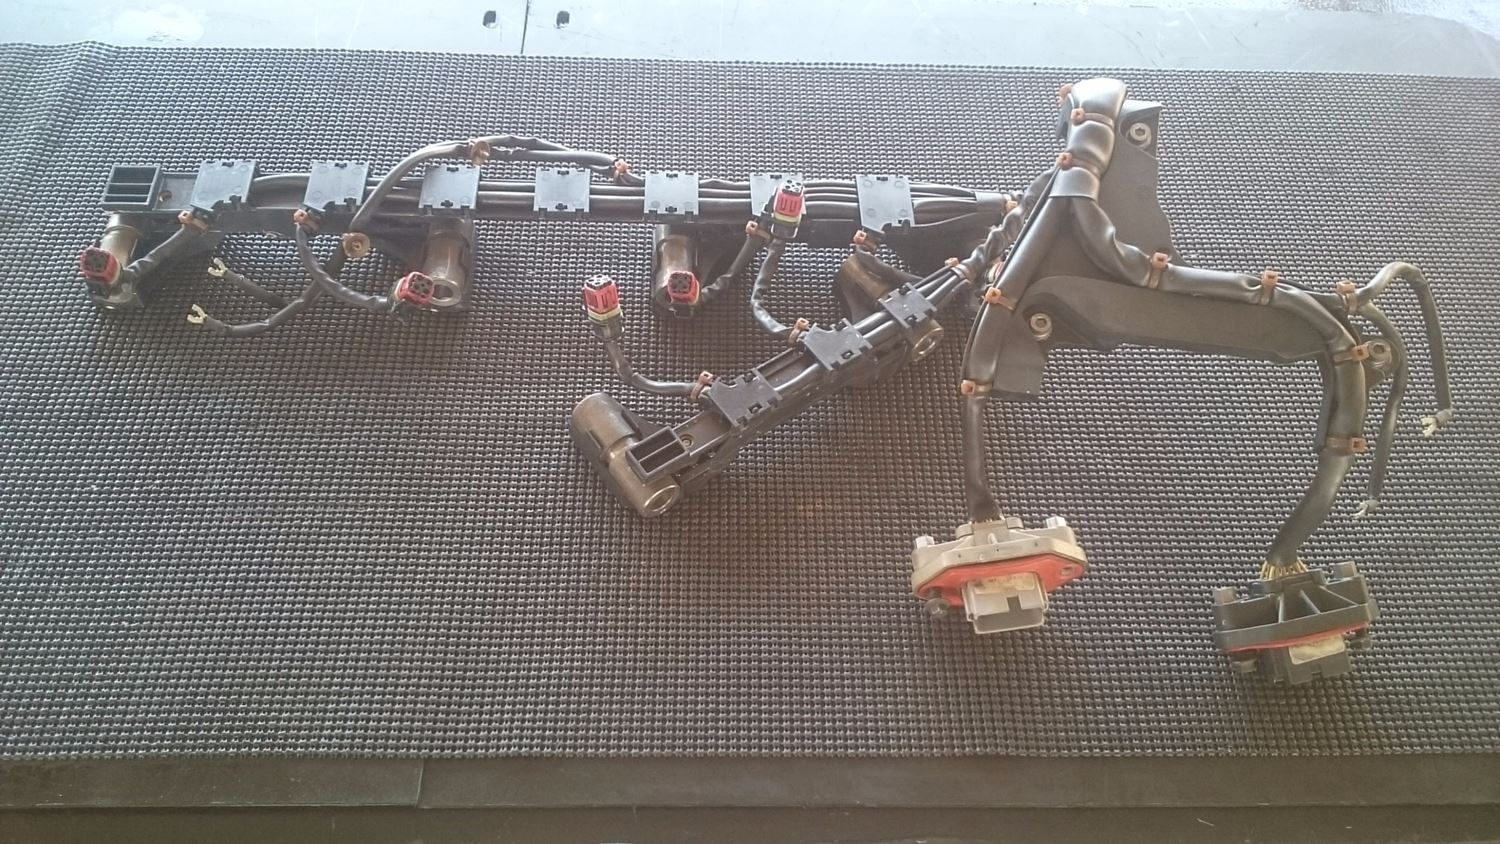 Detroit Series 60 14.0L DDEC V Wiring Harnesses 80946178 yIaKS9ZQJyio_f?h=60&w=100&crop=auto wiring harnesses new and used parts american truck chrome 60 series detroit engine ecm harness wiring at webbmarketing.co